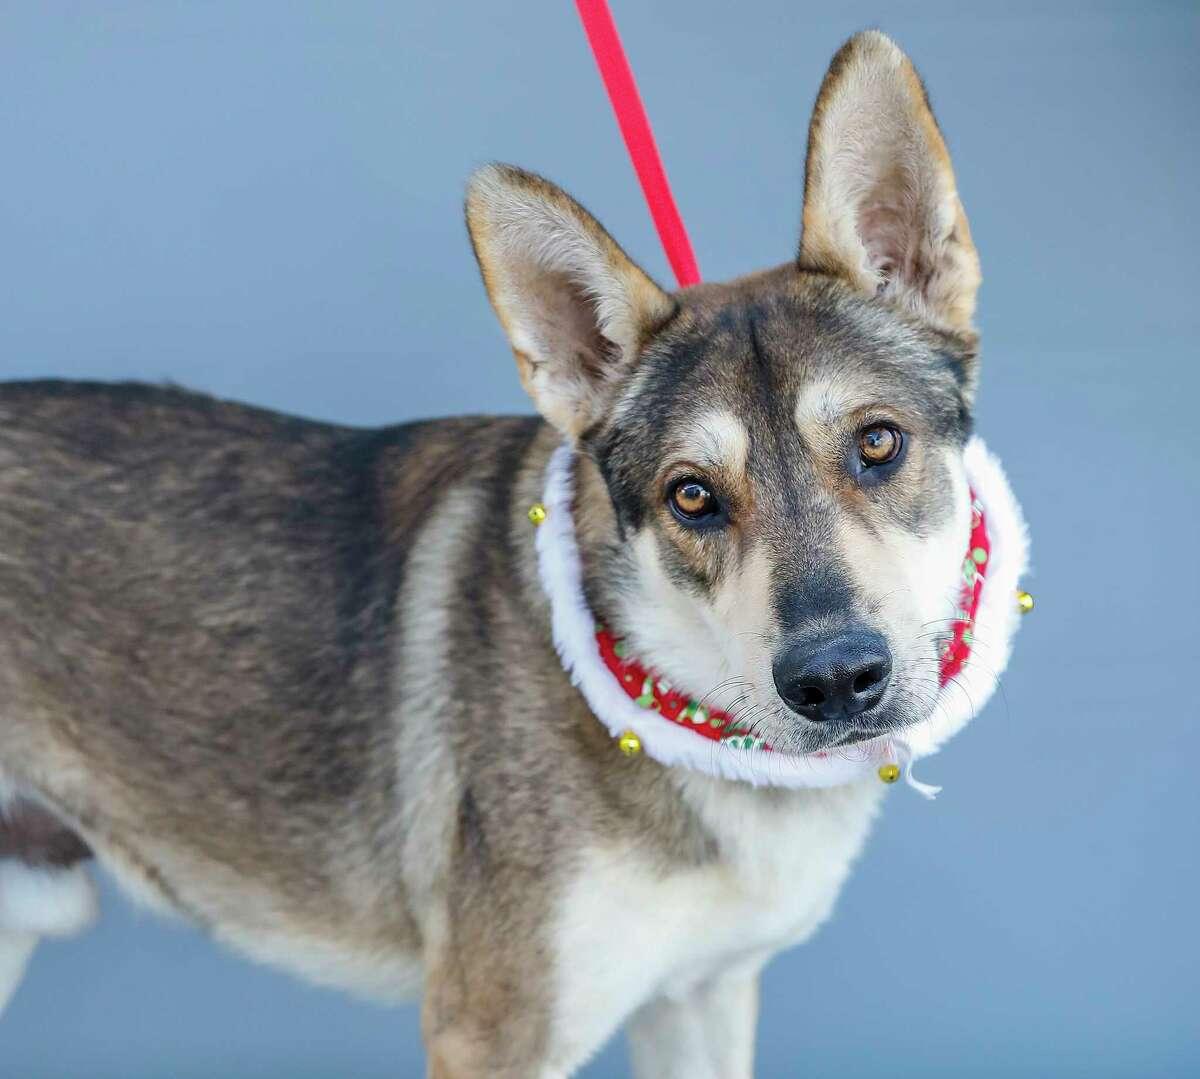 Bruce (A565111) is a 4-year-old, male, German Shepherd mix available for adoption from Harris County Pets. Bruce was adopted from Harris County Pets but returned as it appears he needs to be the only dog in the home. He is a sweetheart who loves men and women but growls at other dogs.